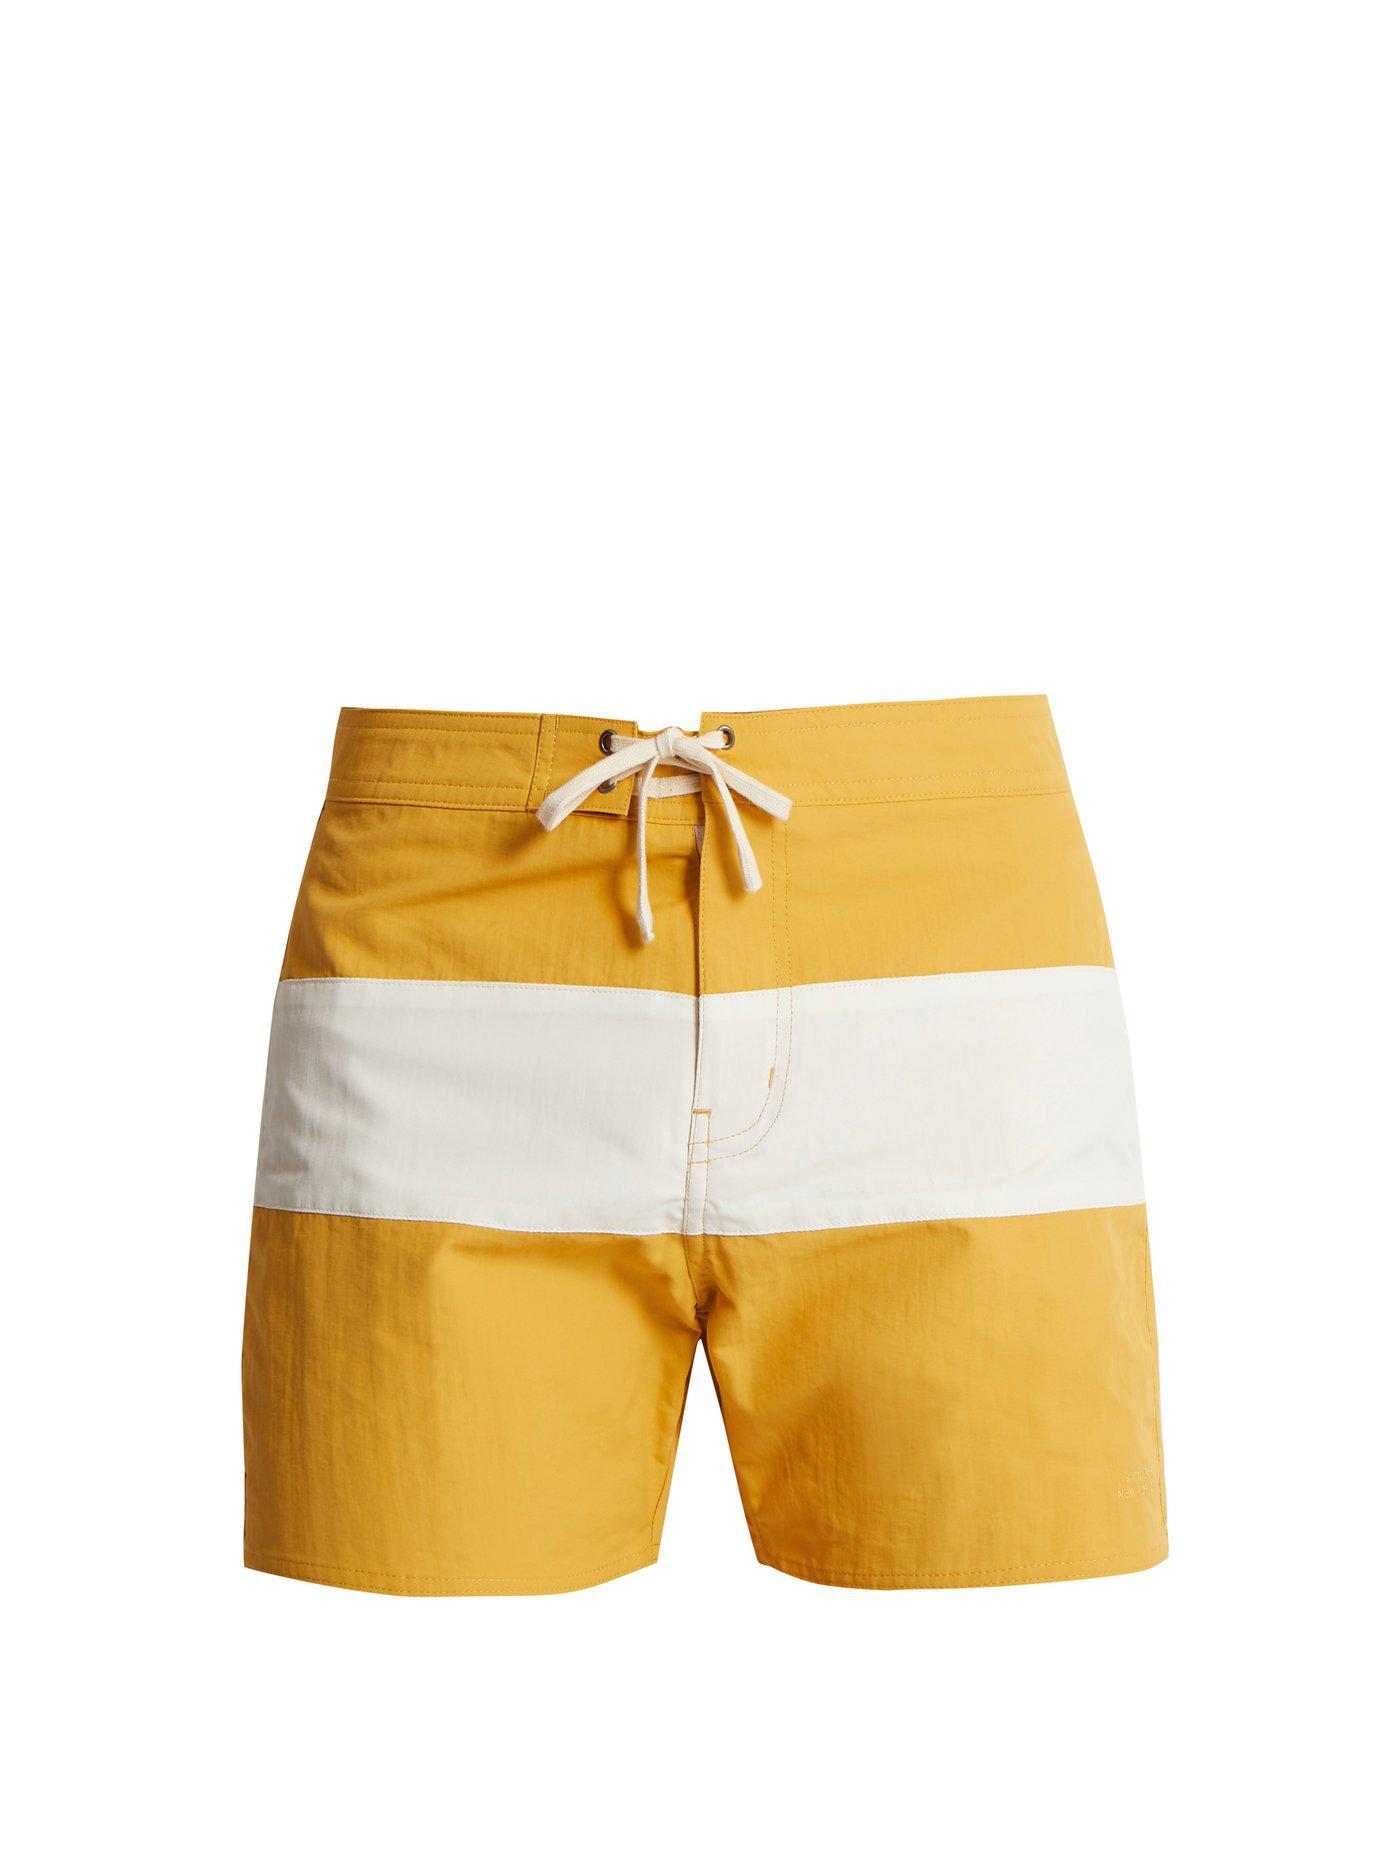 colour block swim shorts - Yellow & Orange Saturdays Surf NYC Free Shipping Shop For wZBh7d